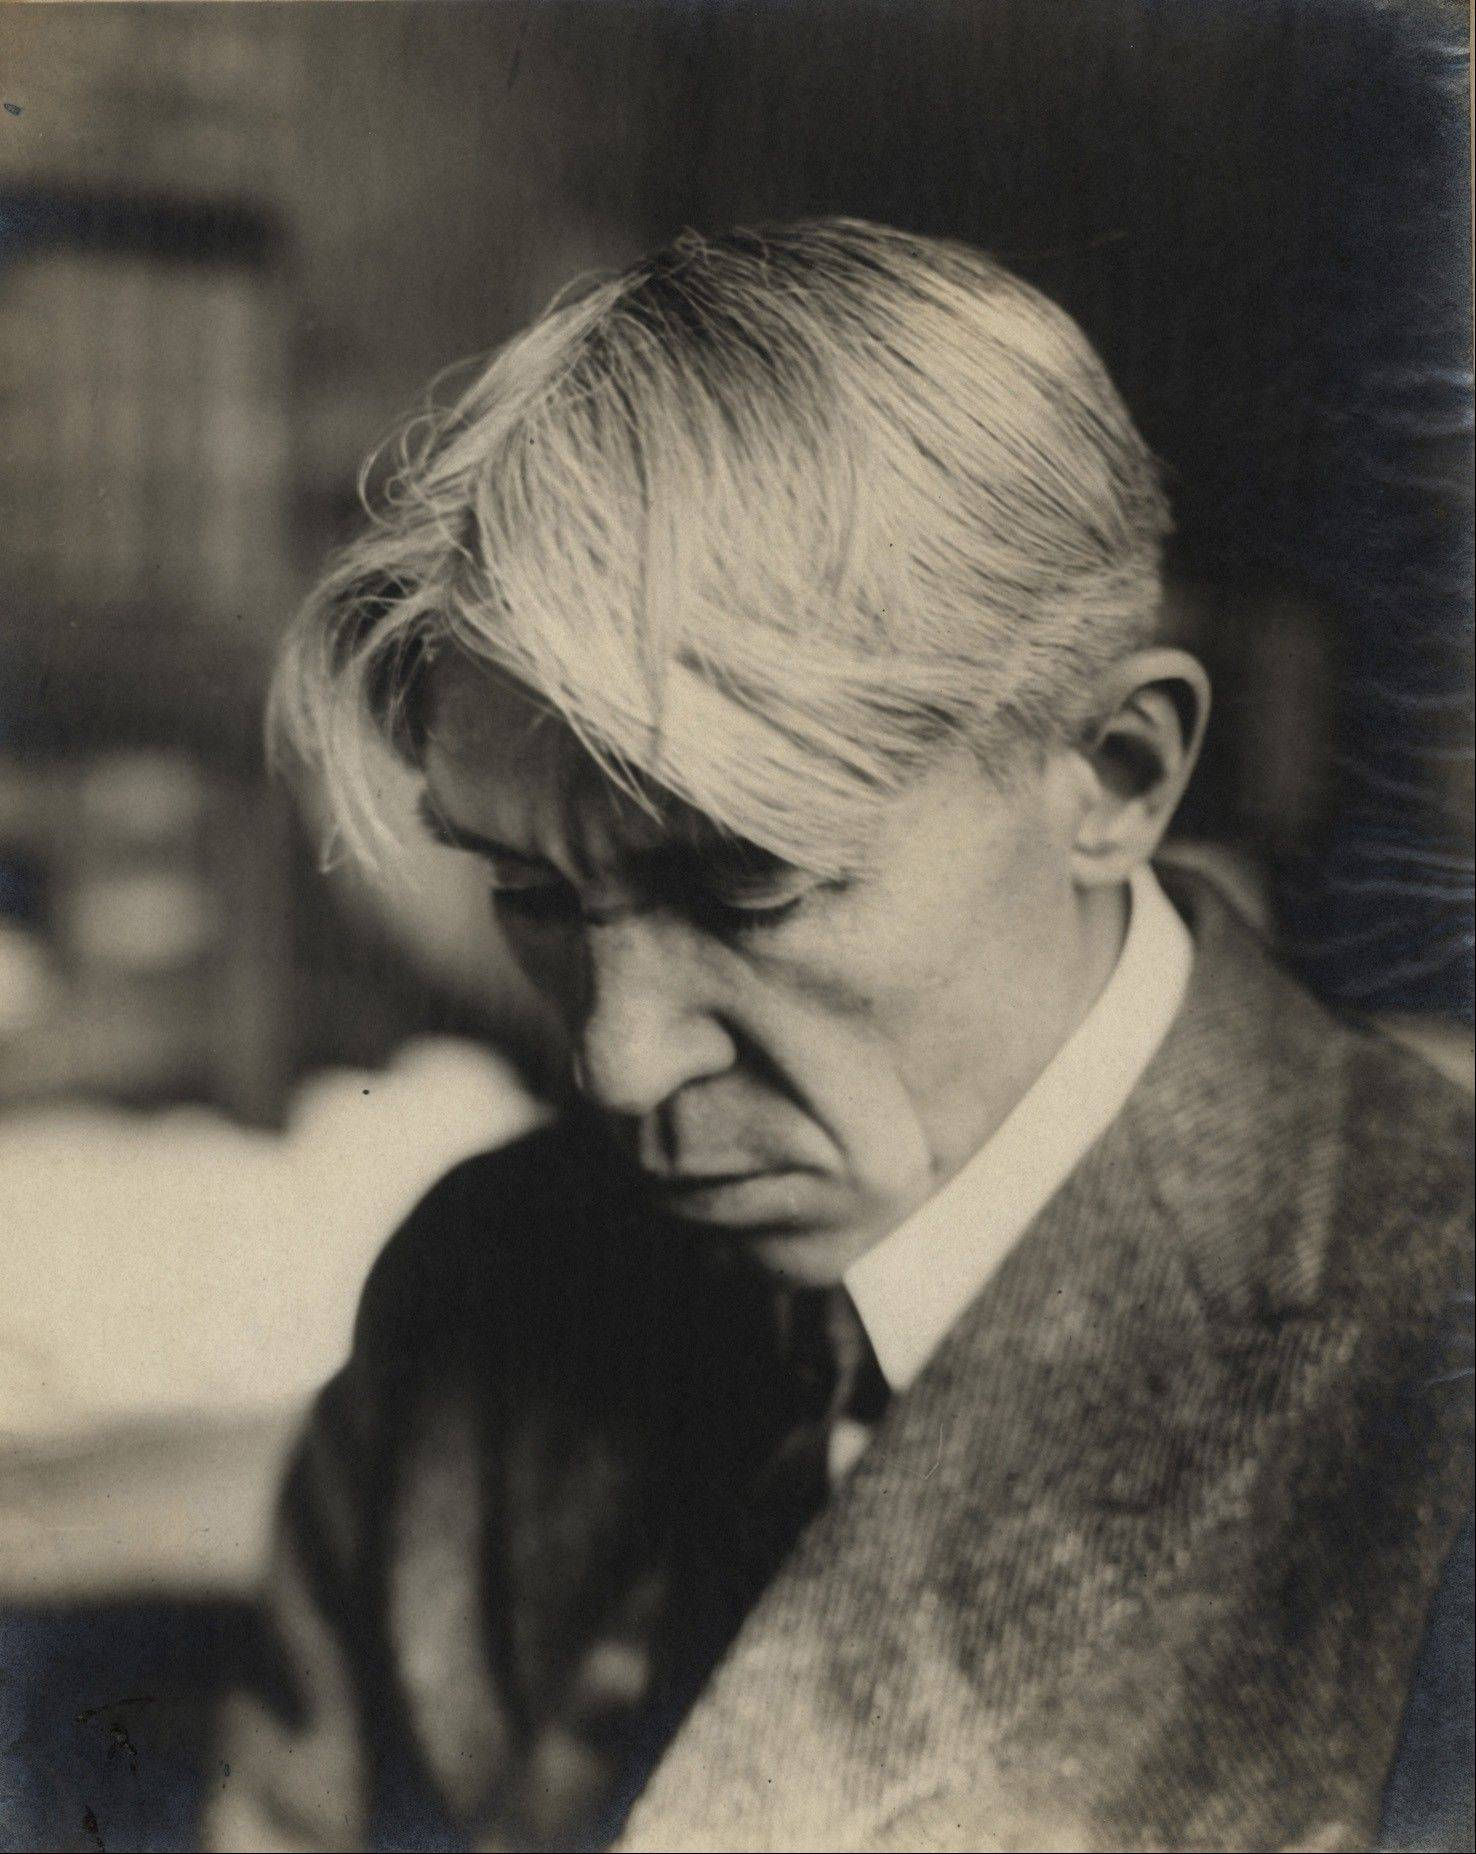 Learn about poet Carl Sandburg at the Elmhurst Historical Museum exhibit, opening this weekend.